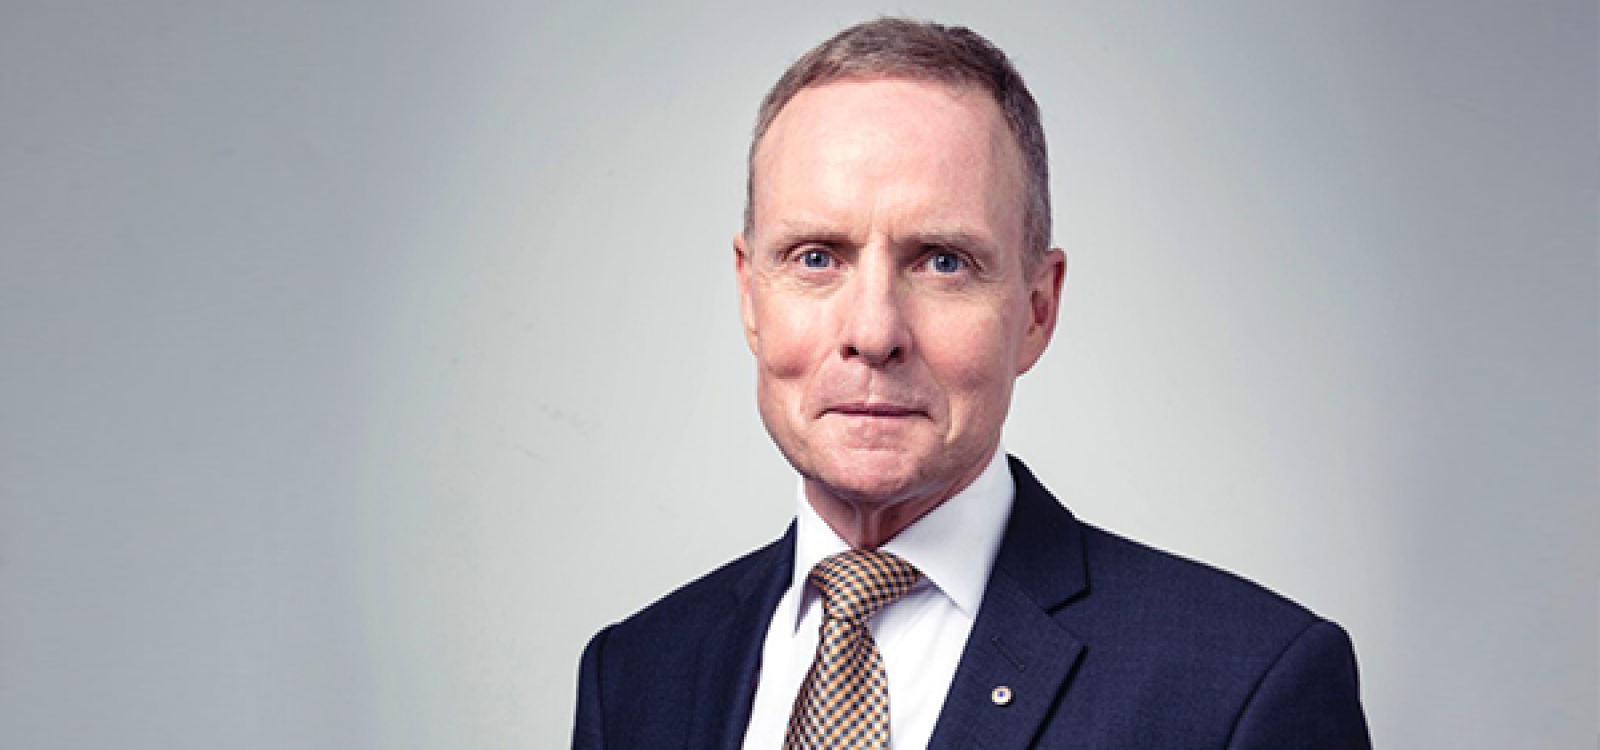 David Morrison, 2016 Australian of the Year on 'Empowering Leadership'